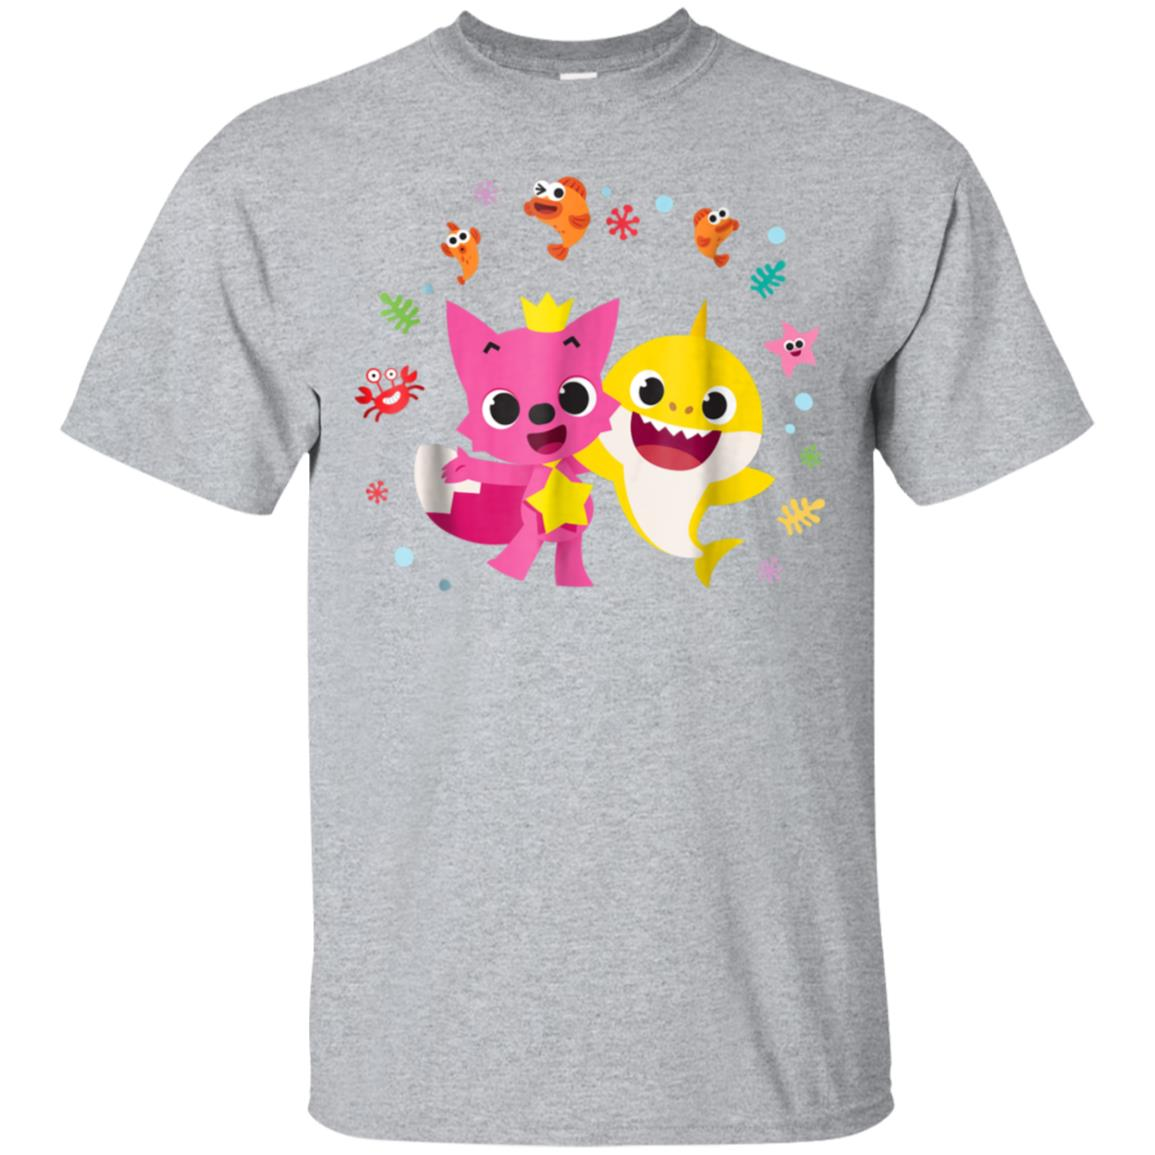 Pinkfong and Baby Shark T-shirt 99promocode